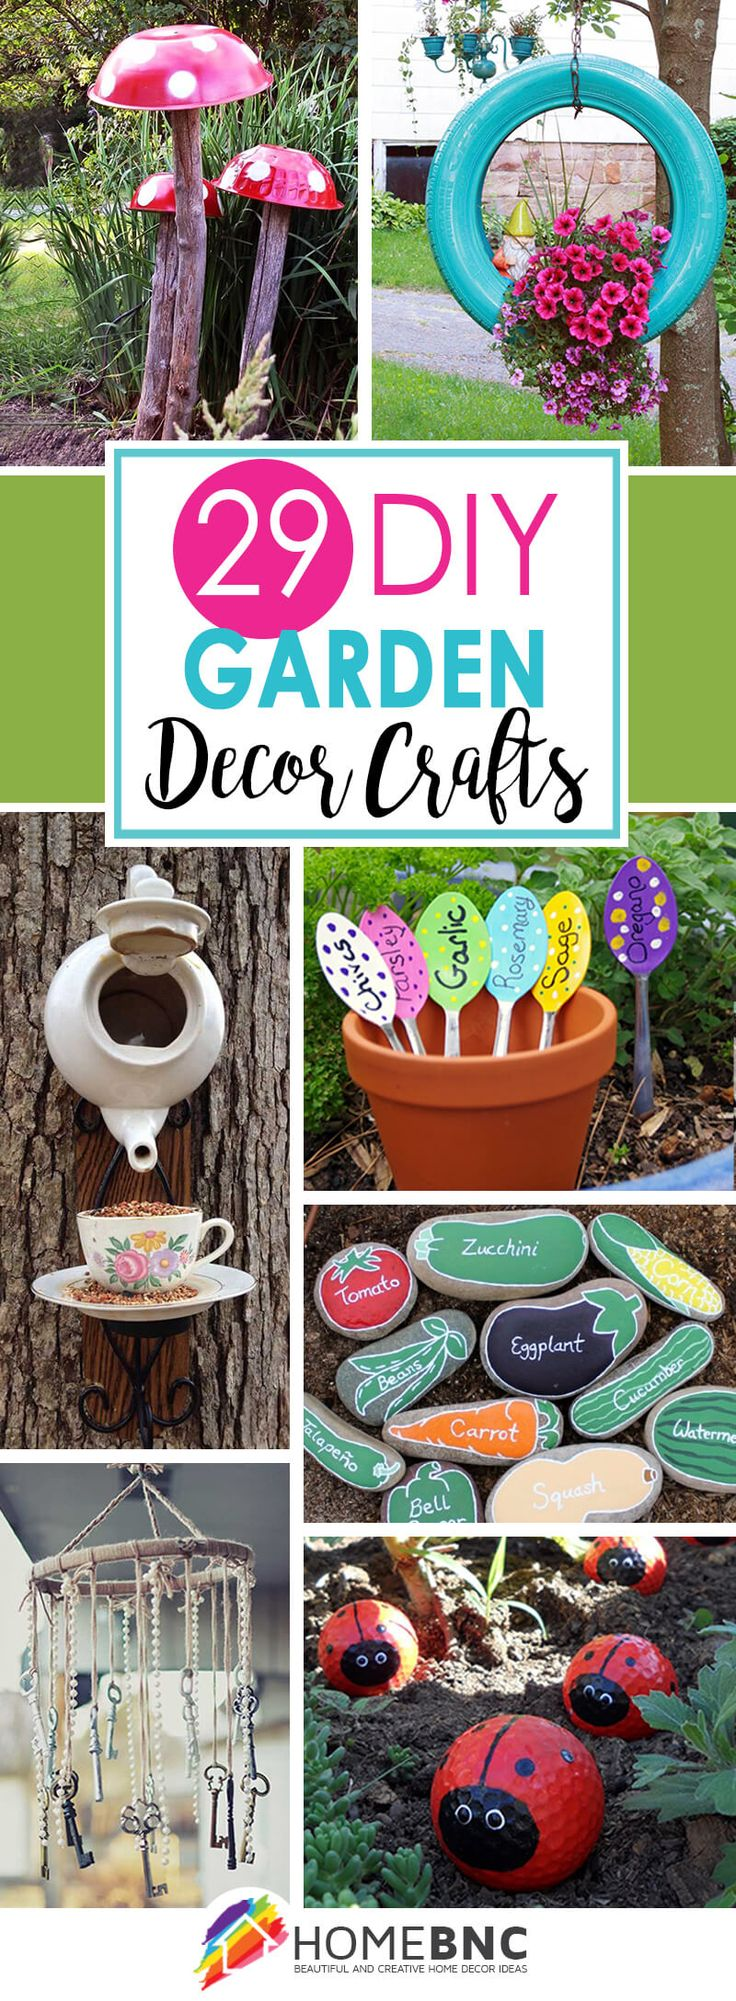 Homemade yard art ideas - 29 Cute Diy Garden Crafts You Can Make For Your Outdoor Space